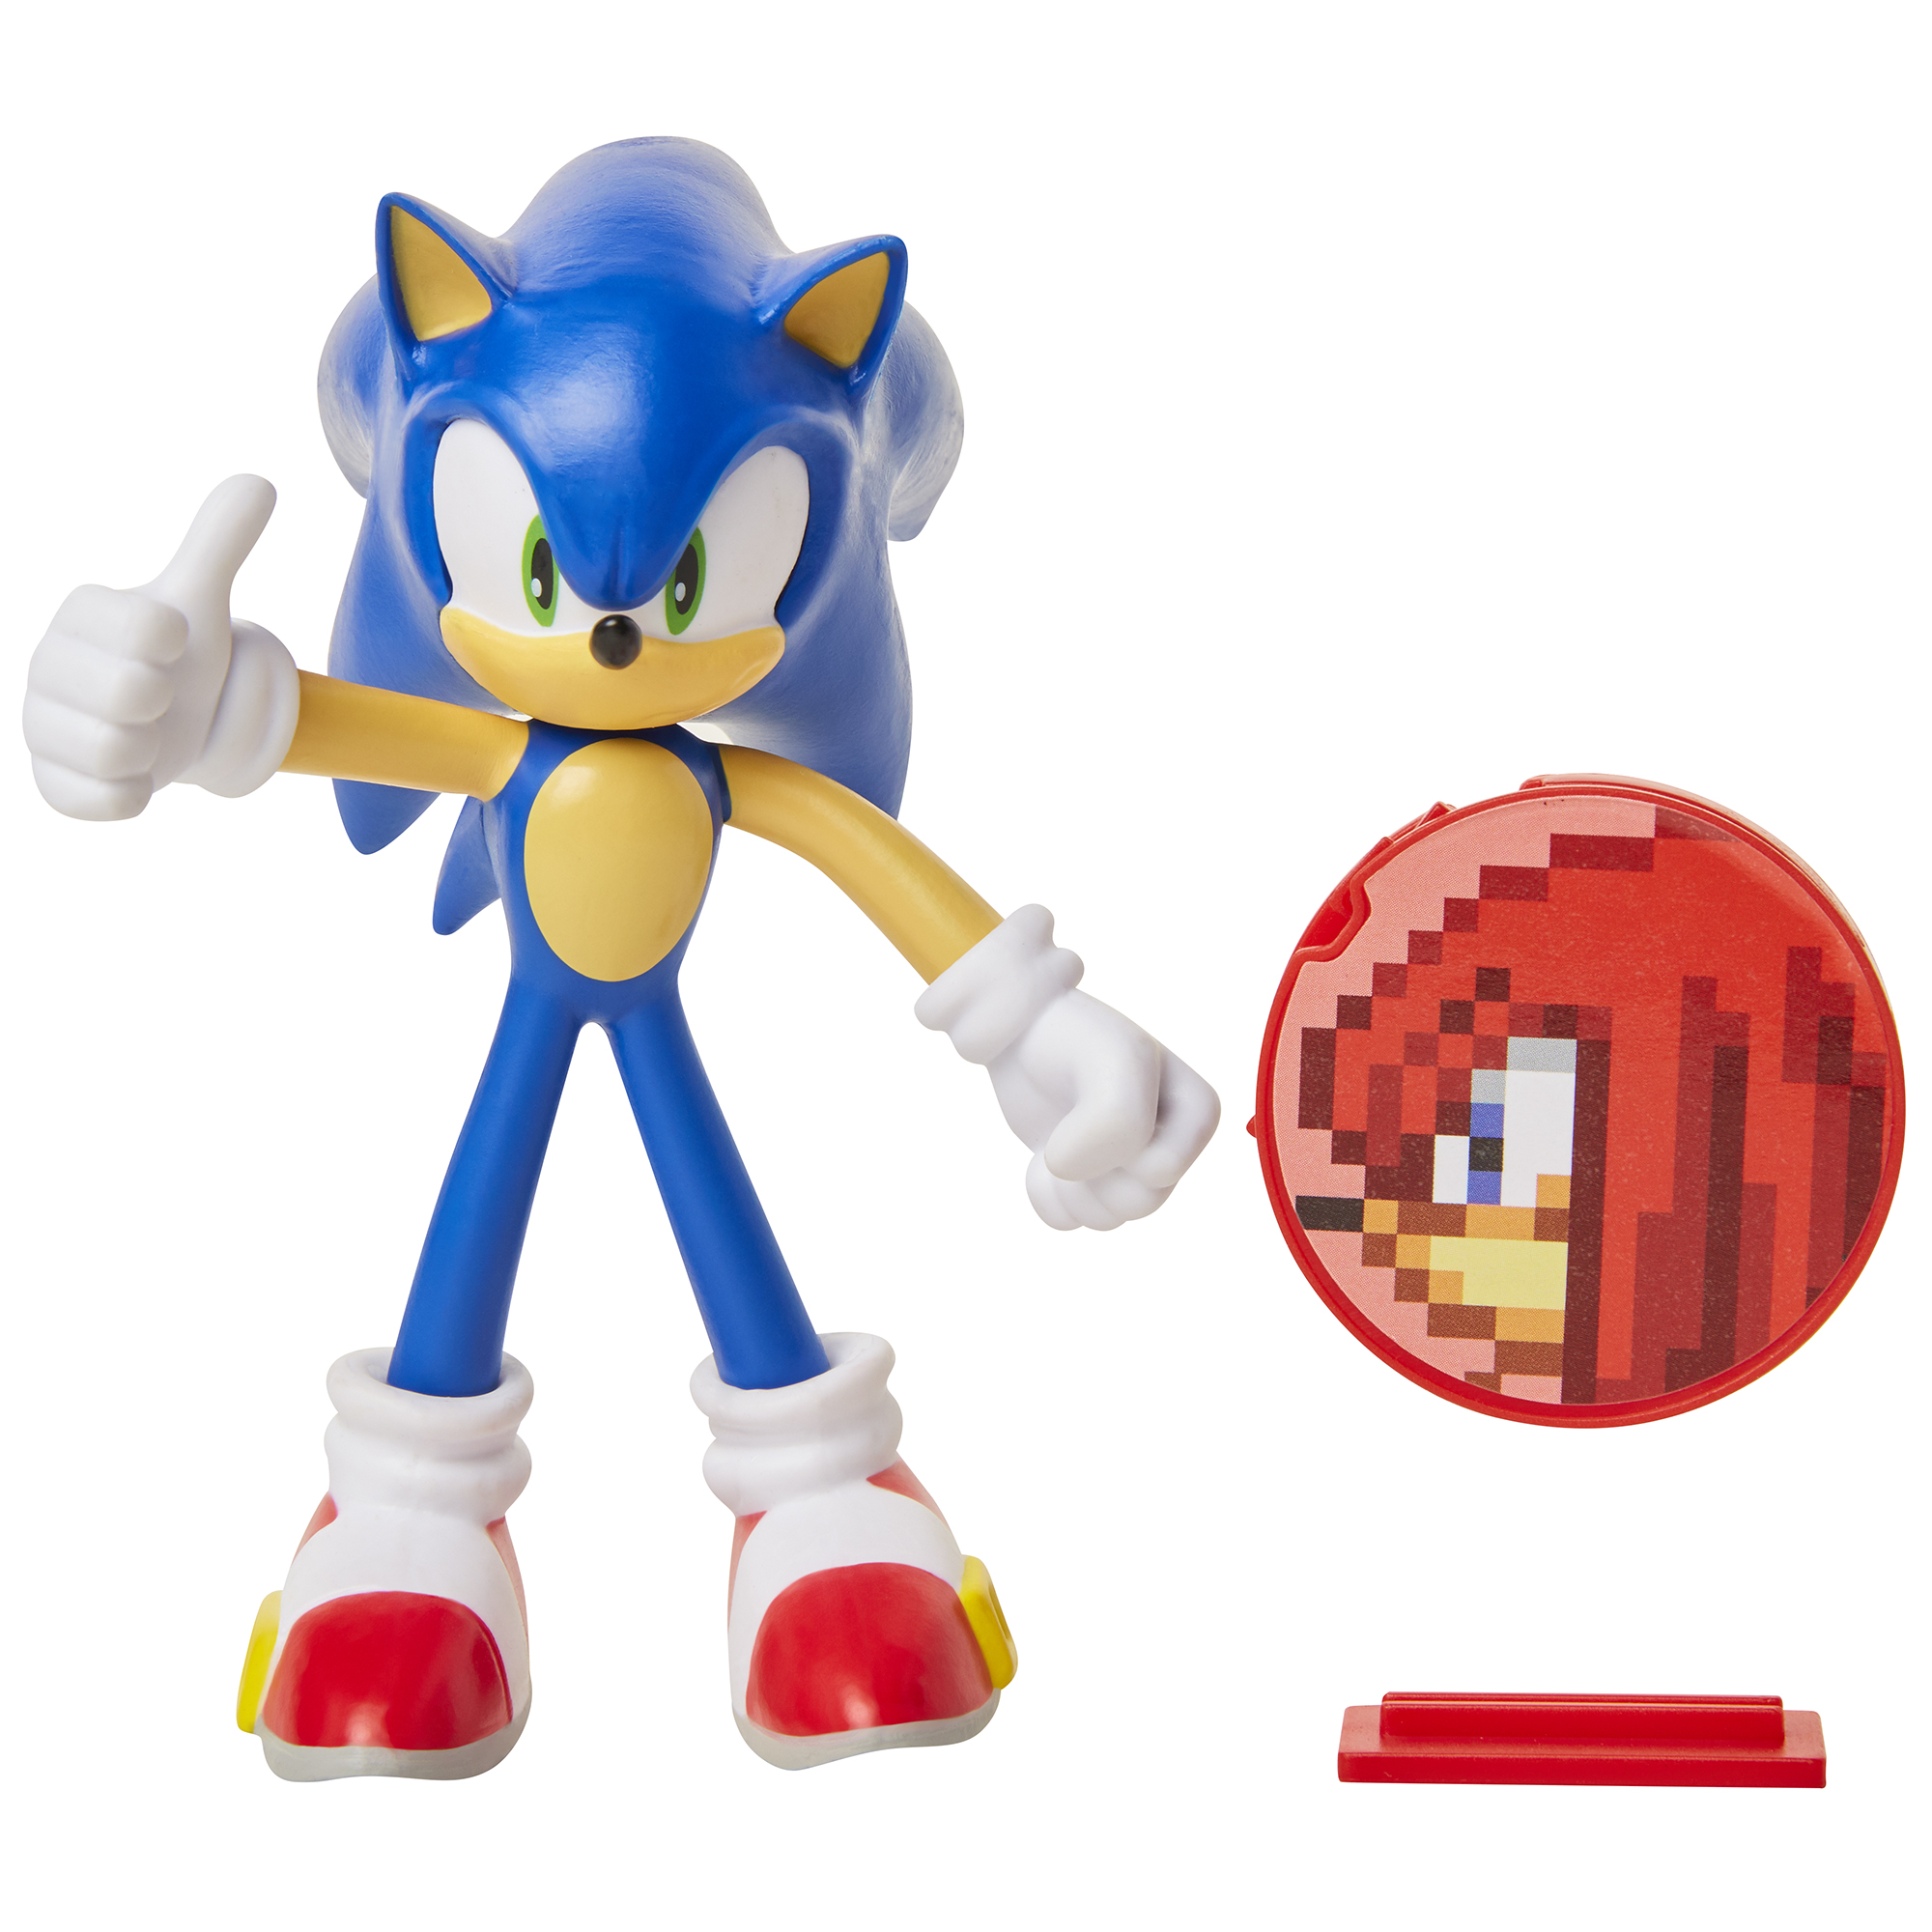 Sonic the Hedgehog Classic Action Figure Collectible Customize Sonic Toy Gift